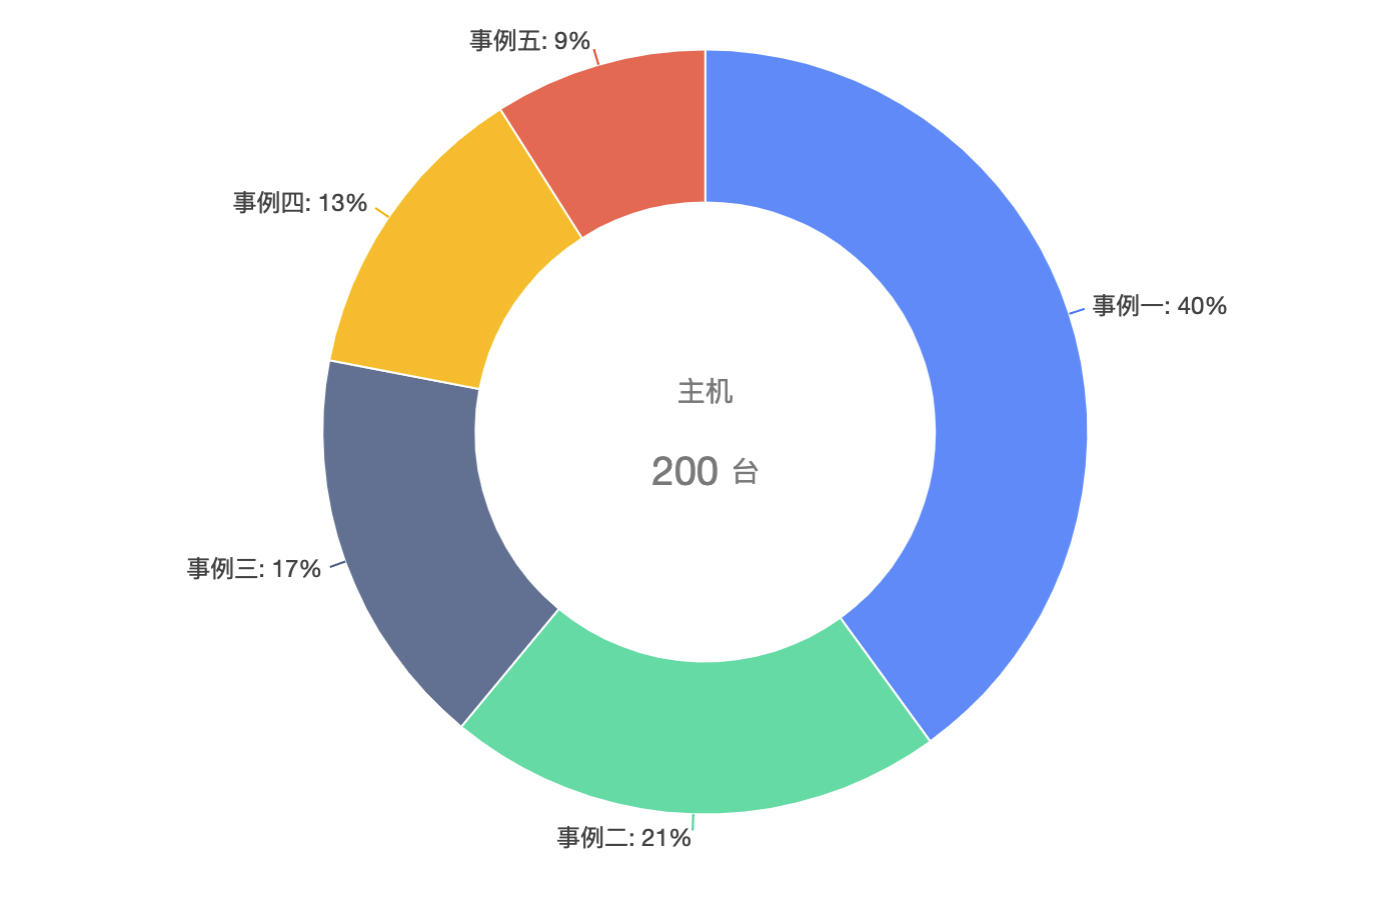 donut chart with text